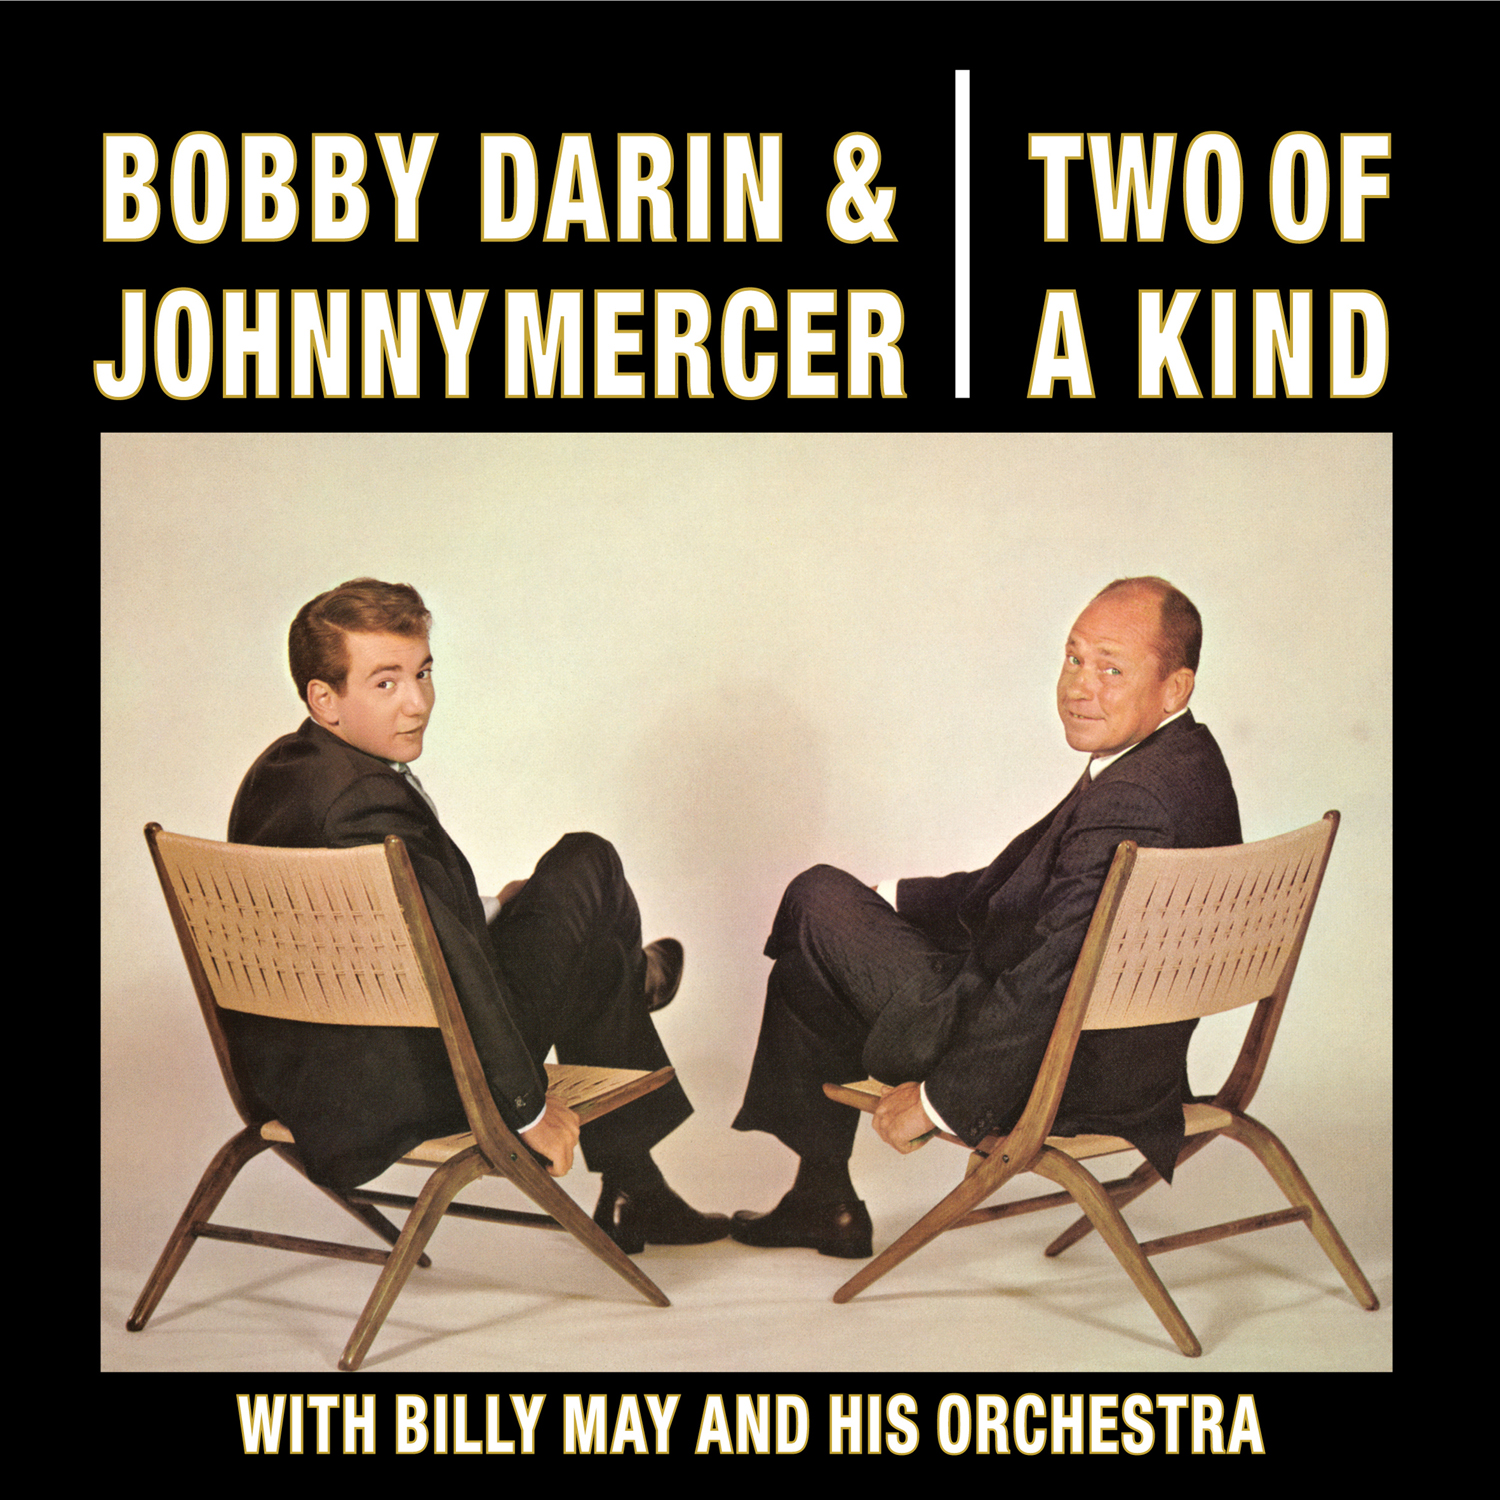 Bobby Darin & Johnny Mercer - Two of A Kind  Release Date: March 24, 2017 Label: Omnivore Recordings  SERVICE: Restoration, Mastering NUMBER OF DISCS: 1 GENRE: Jazz FORMAT: CD